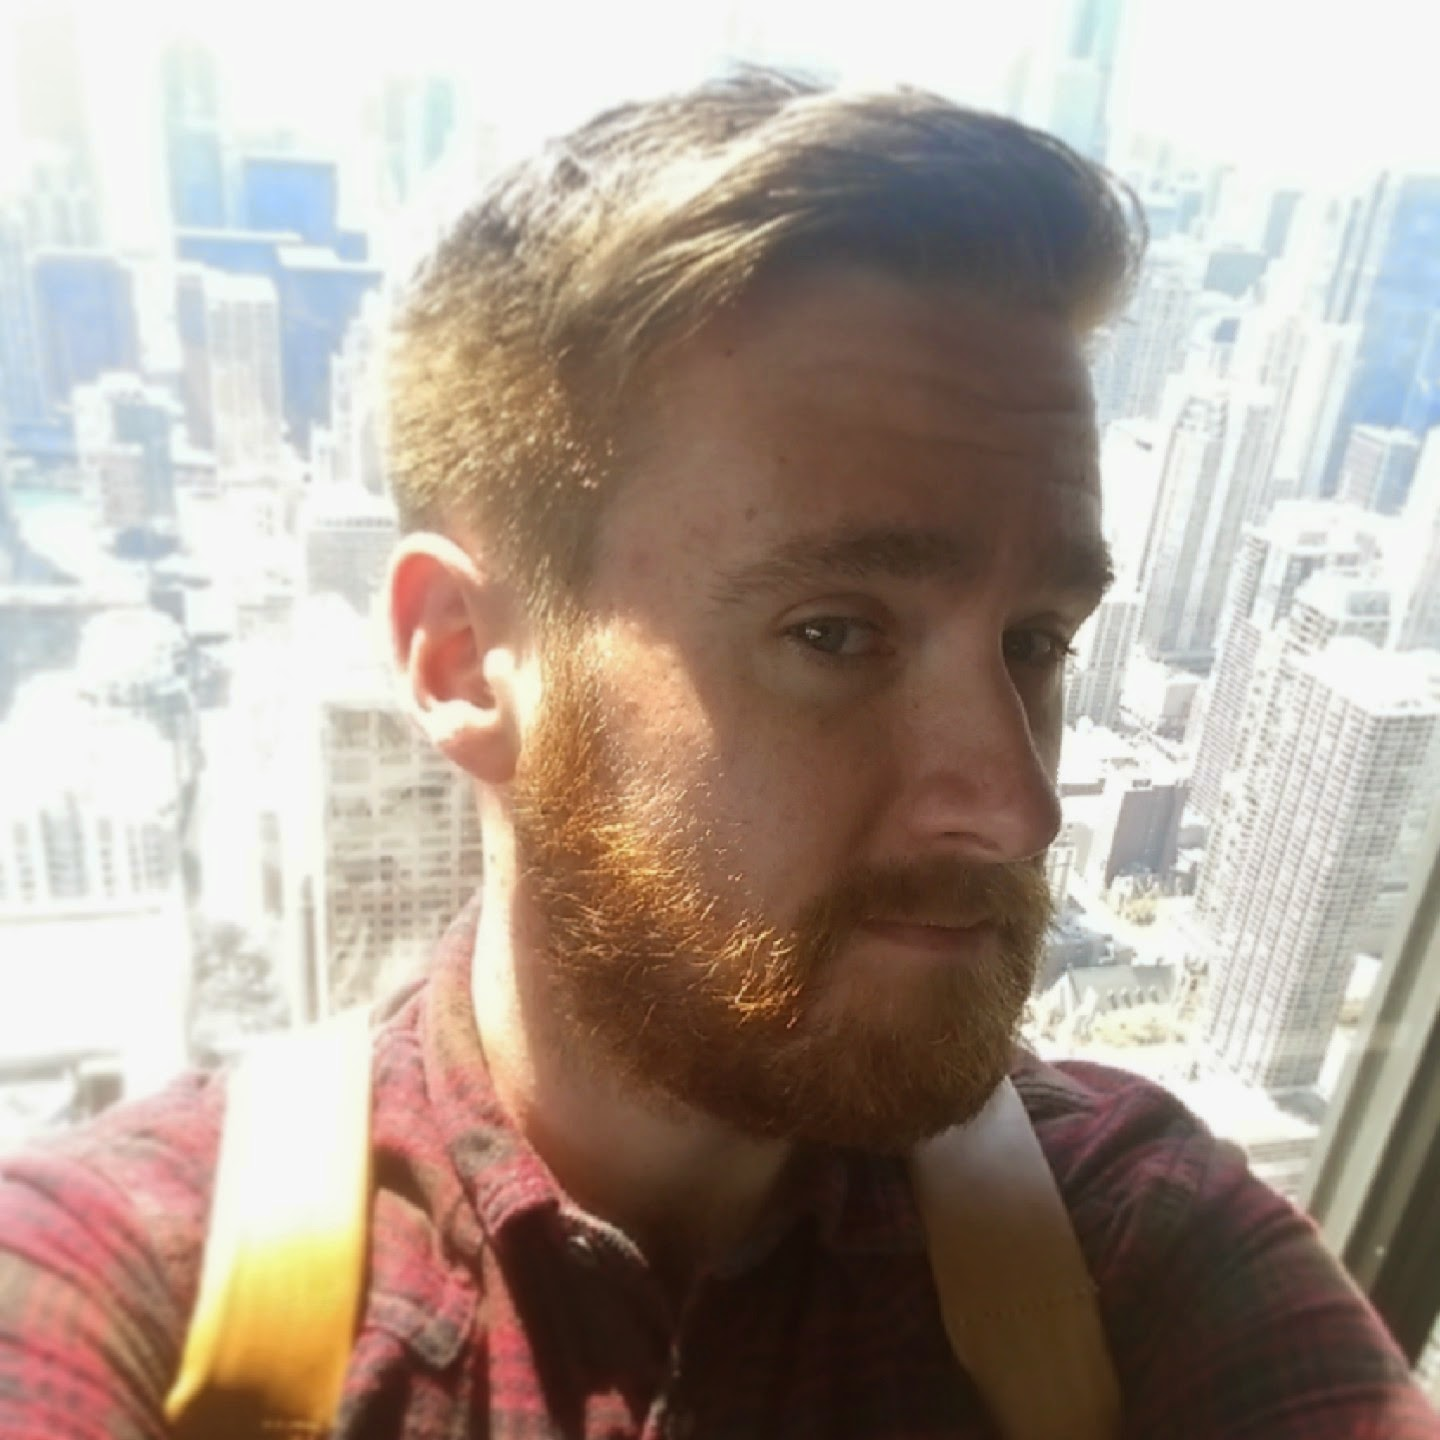 hancock tower chicago rogues brogues menswear blog selfie